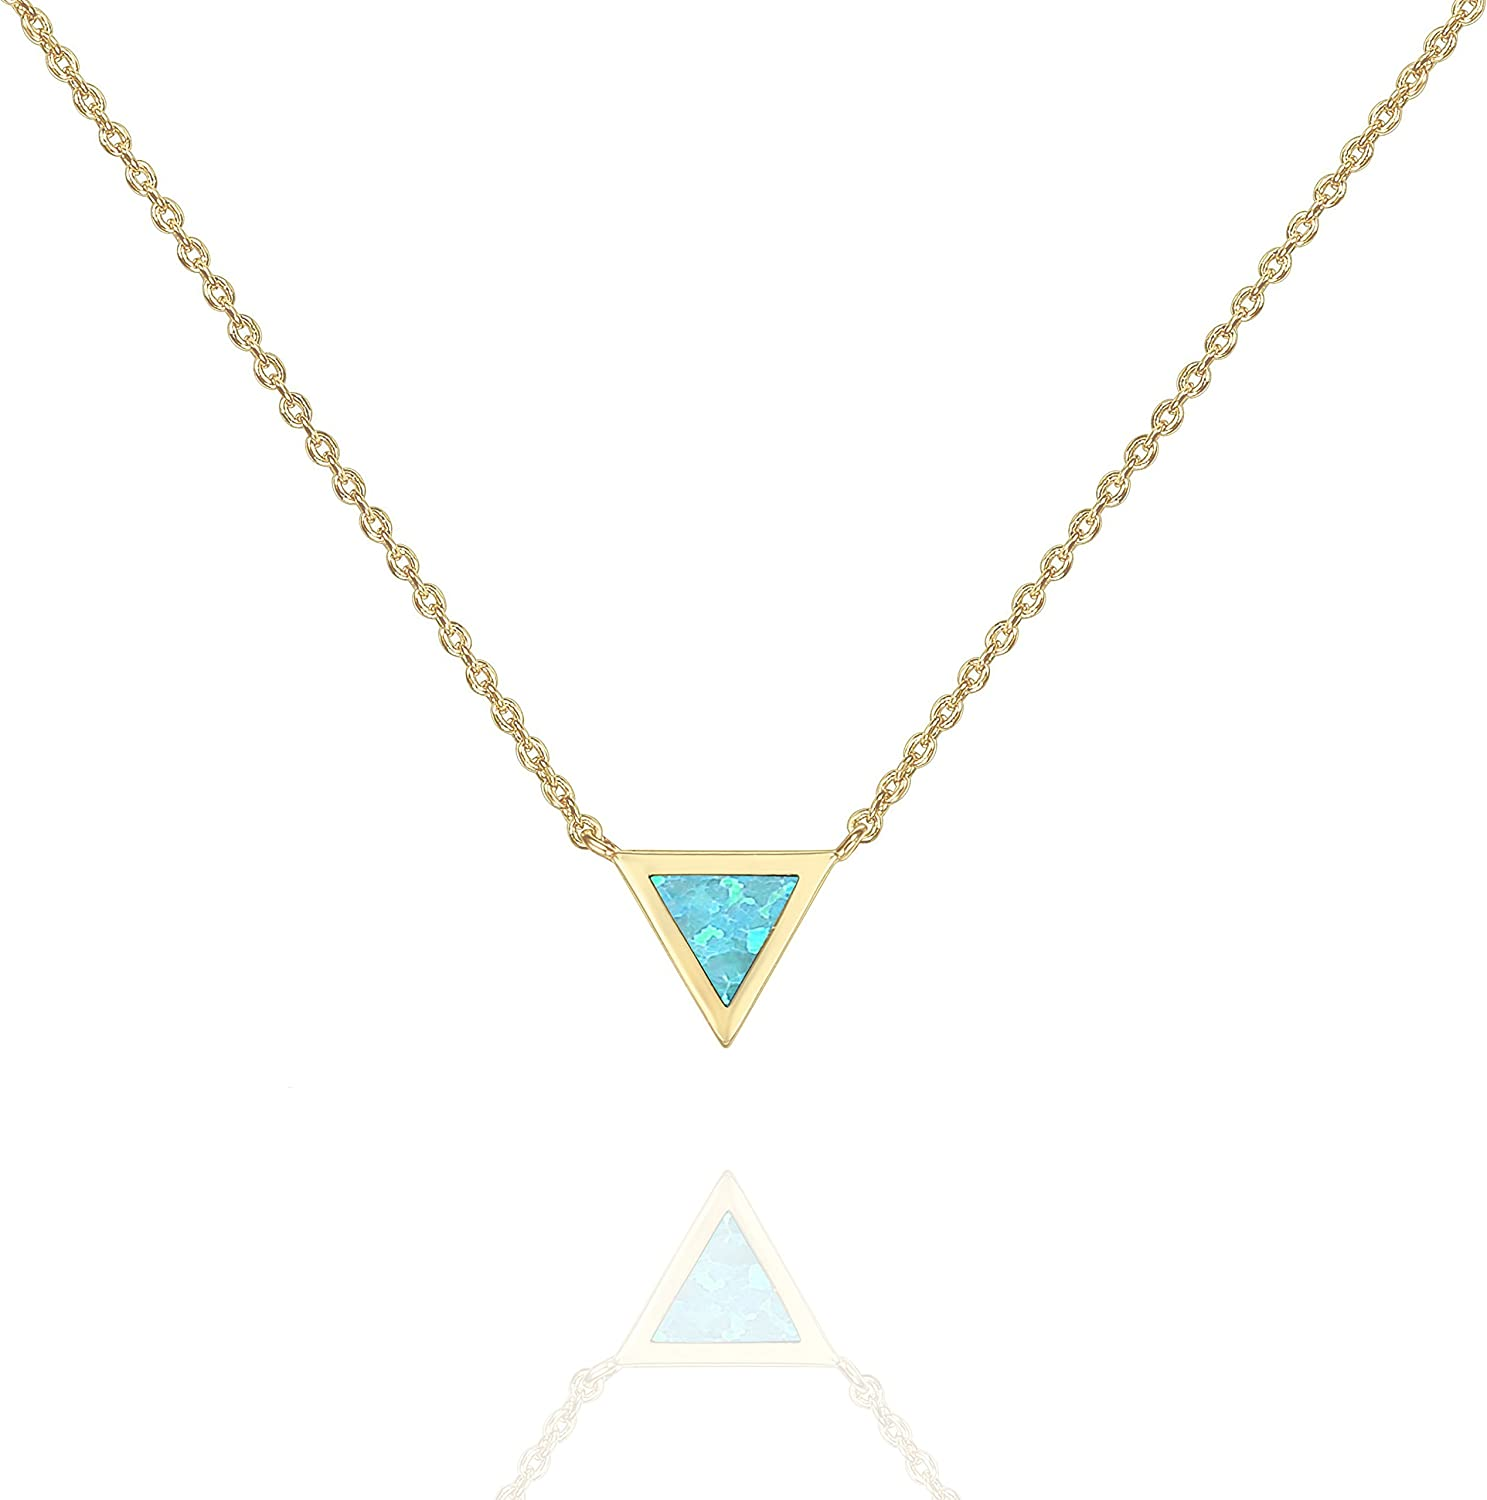 PAVOI 14K Gold Plated Created Opal Necklace | Opal Necklaces for Women